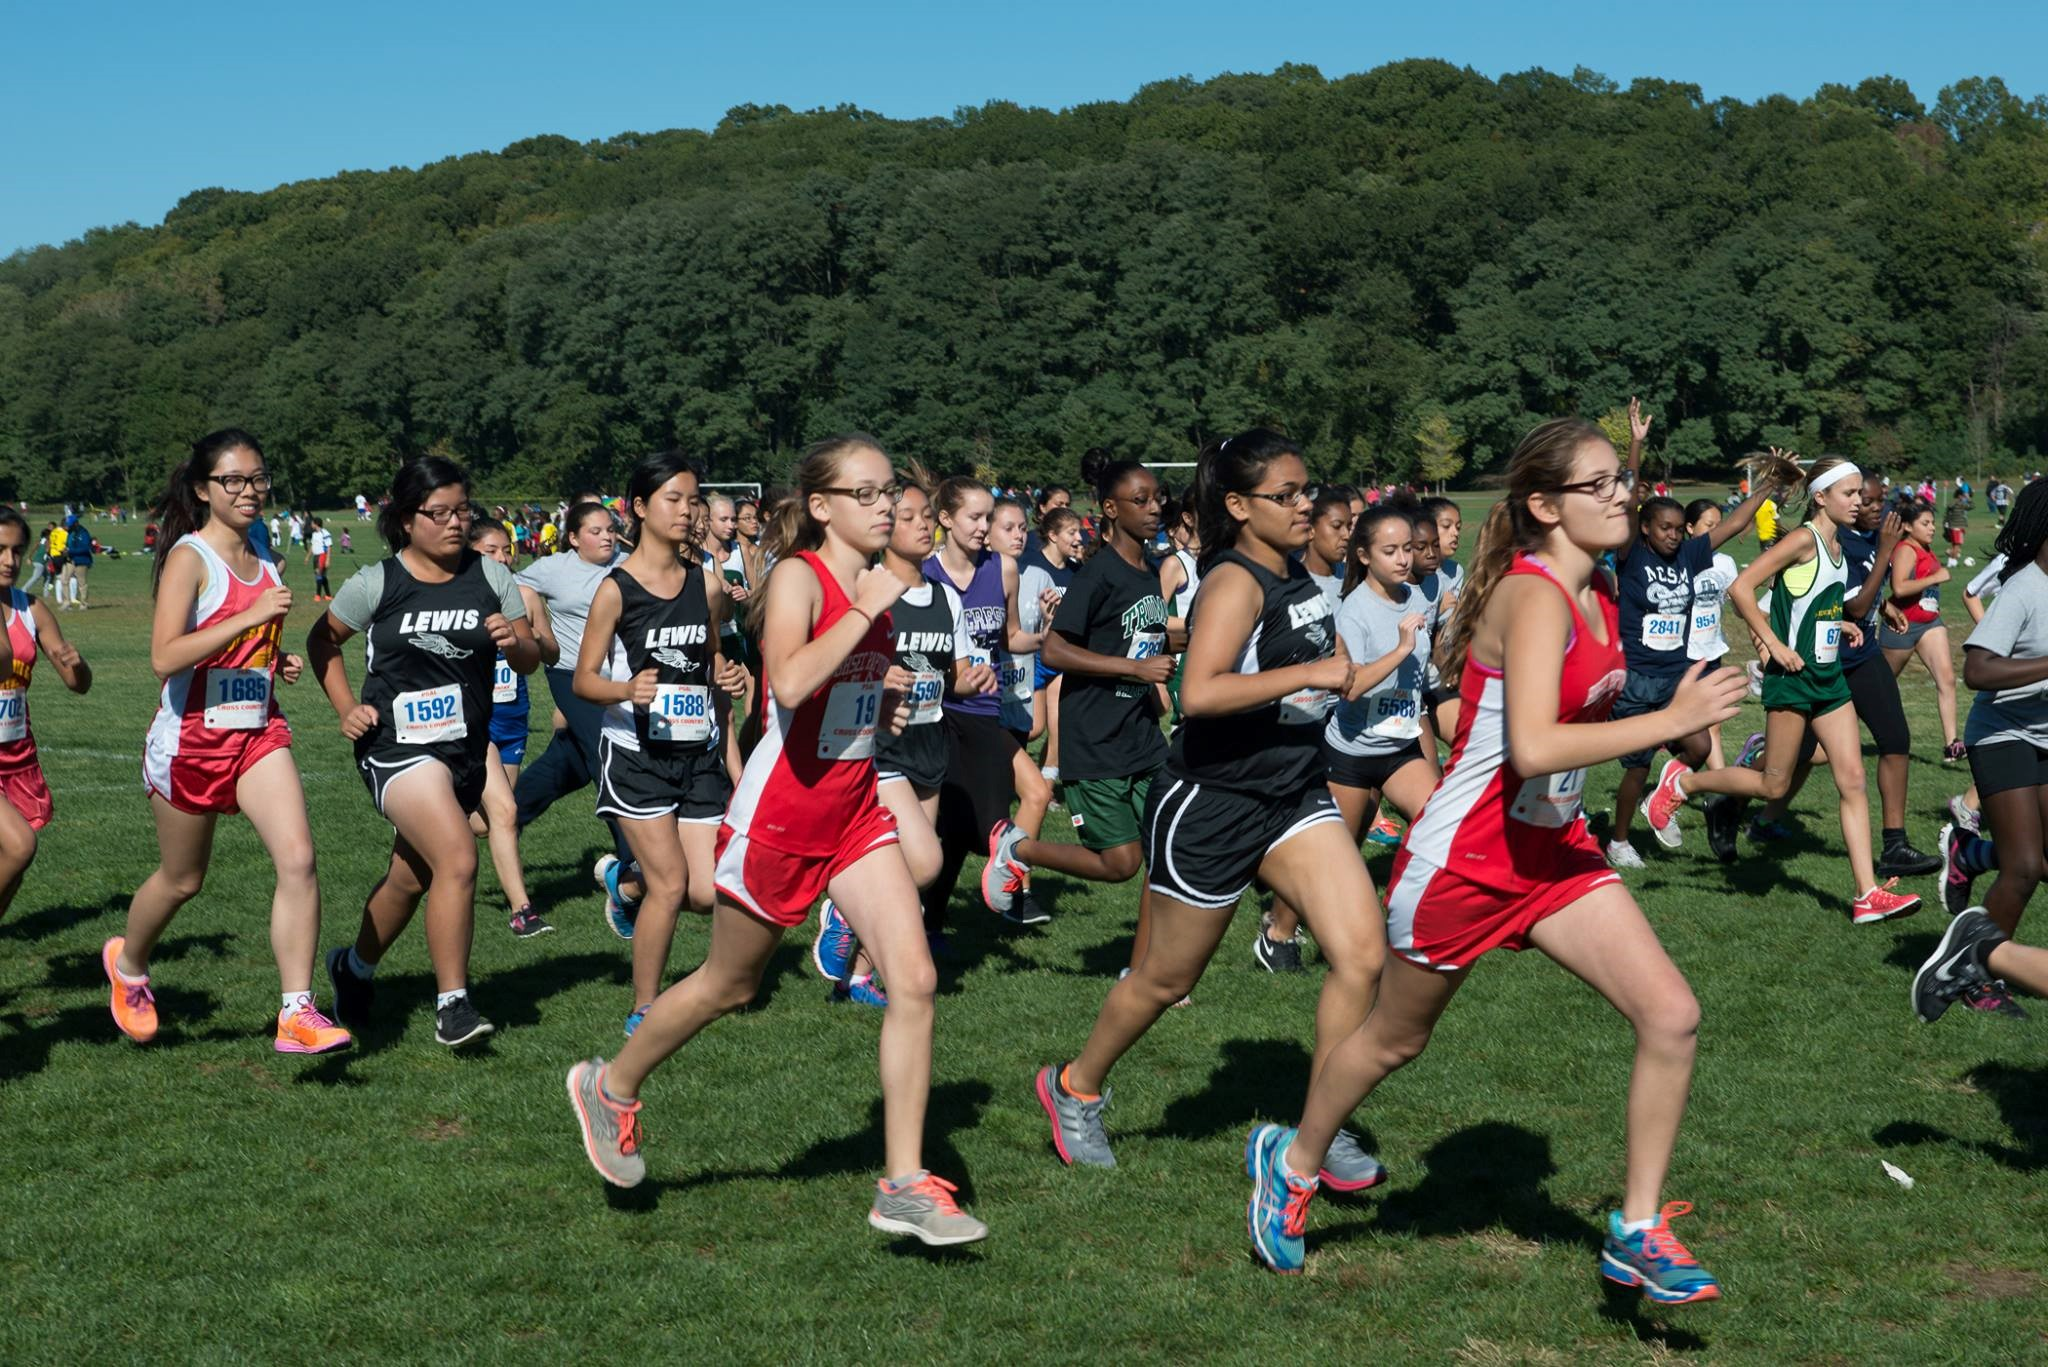 NYC Mayor's Cup Cross Country City Championships